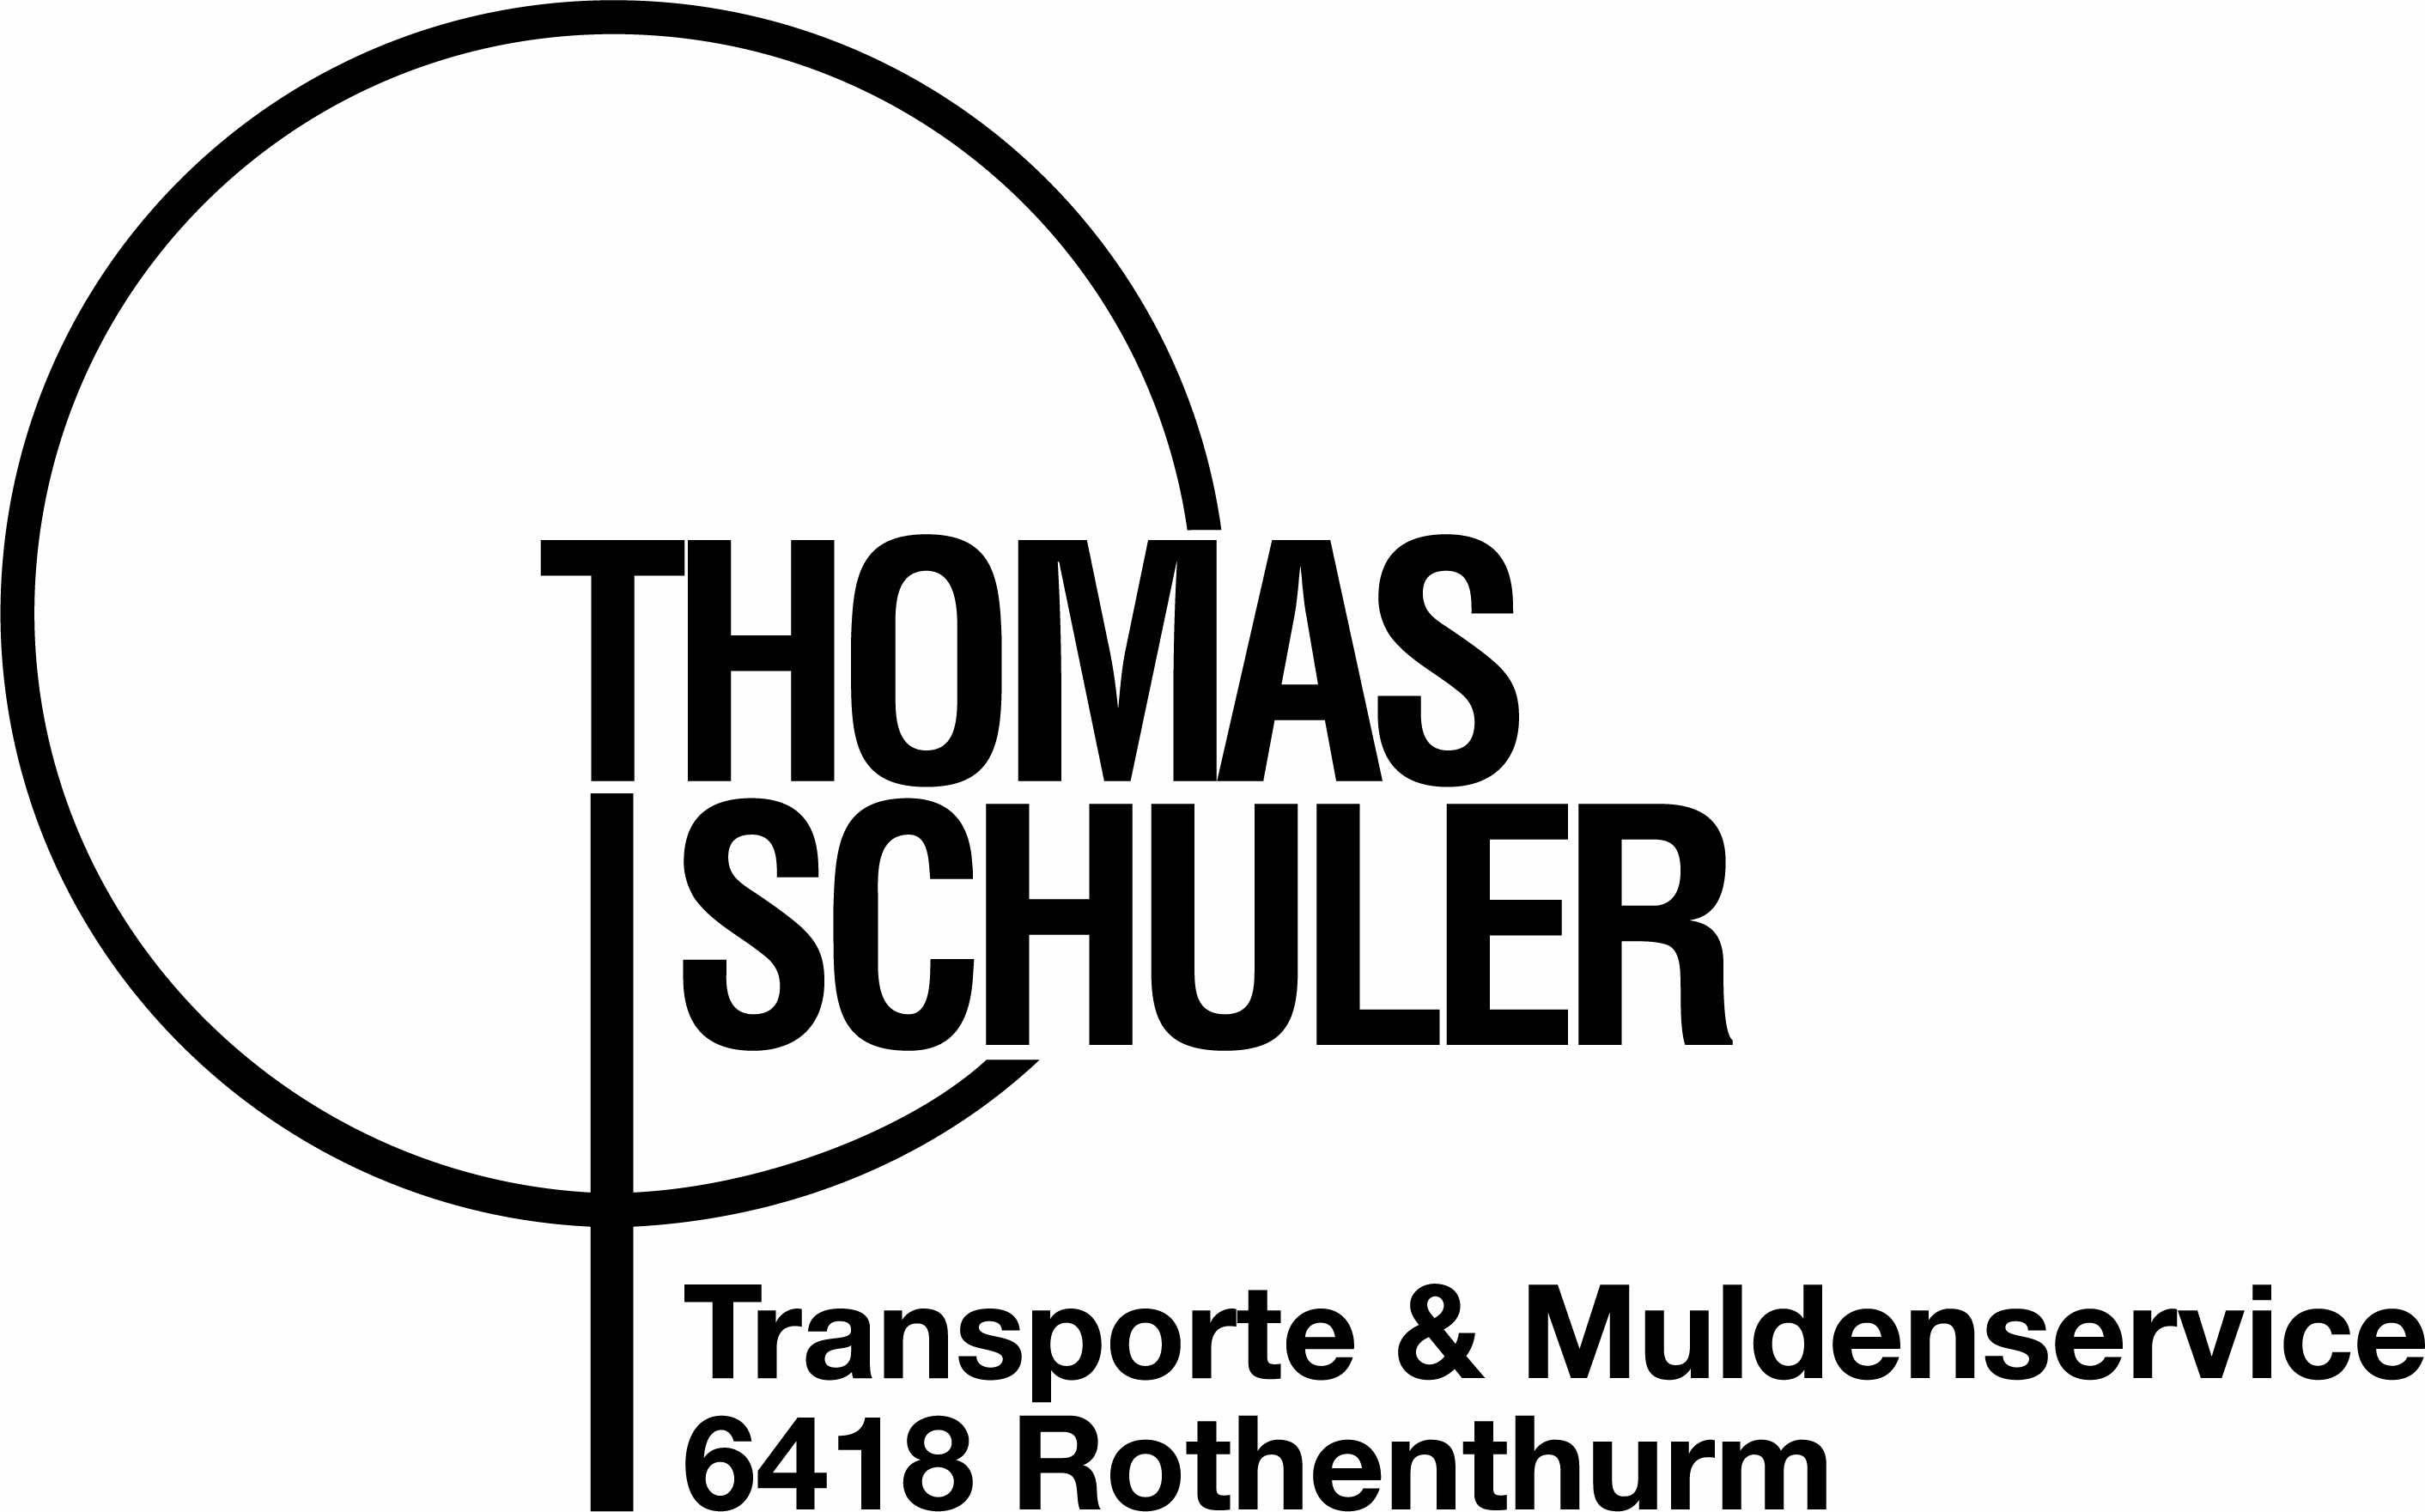 Thomas Schuler Transport